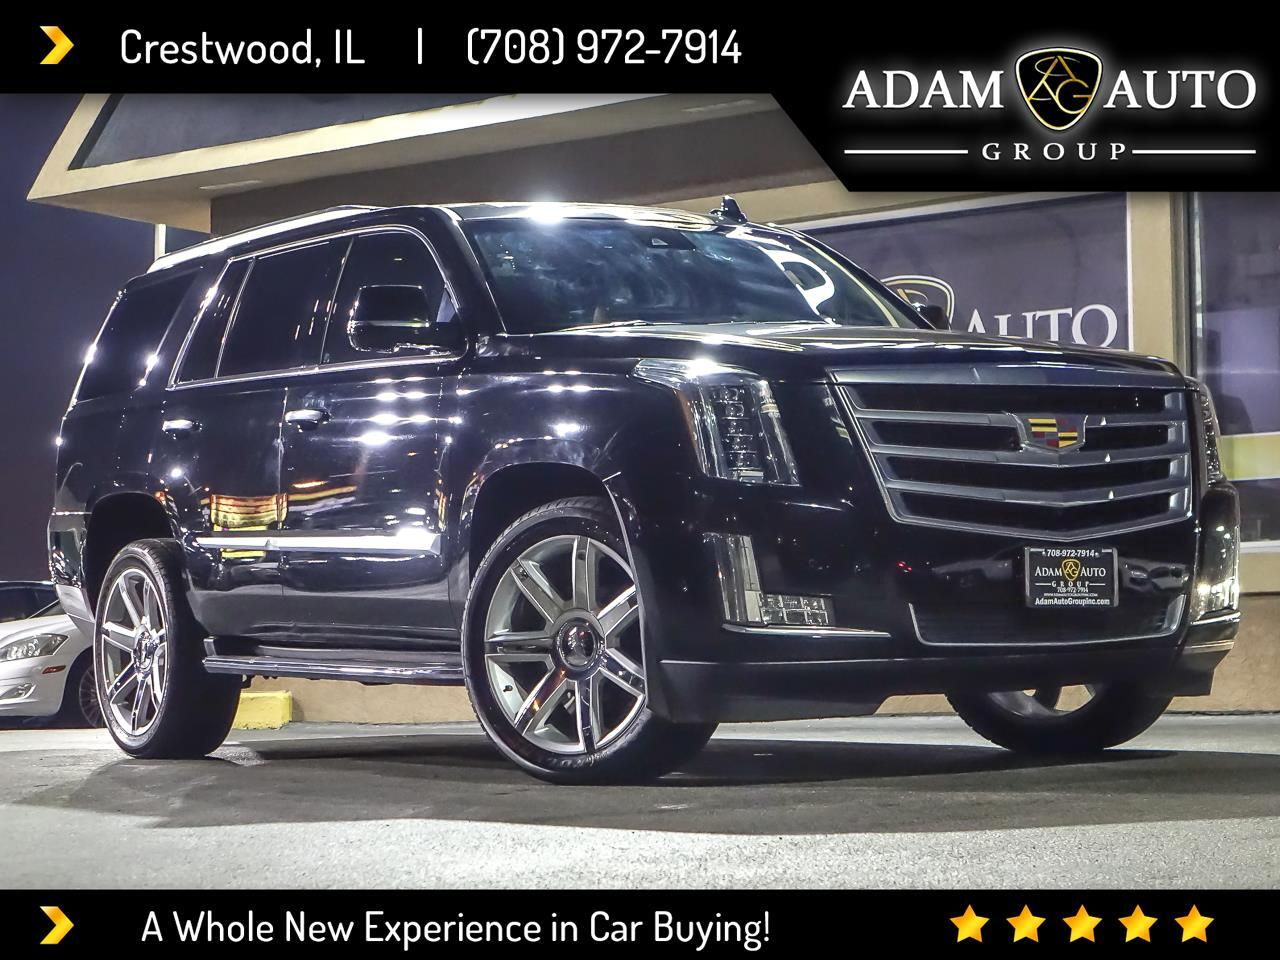 Used 2017 Cadillac Escalade Luxury 4WD for Sale in Crestwood